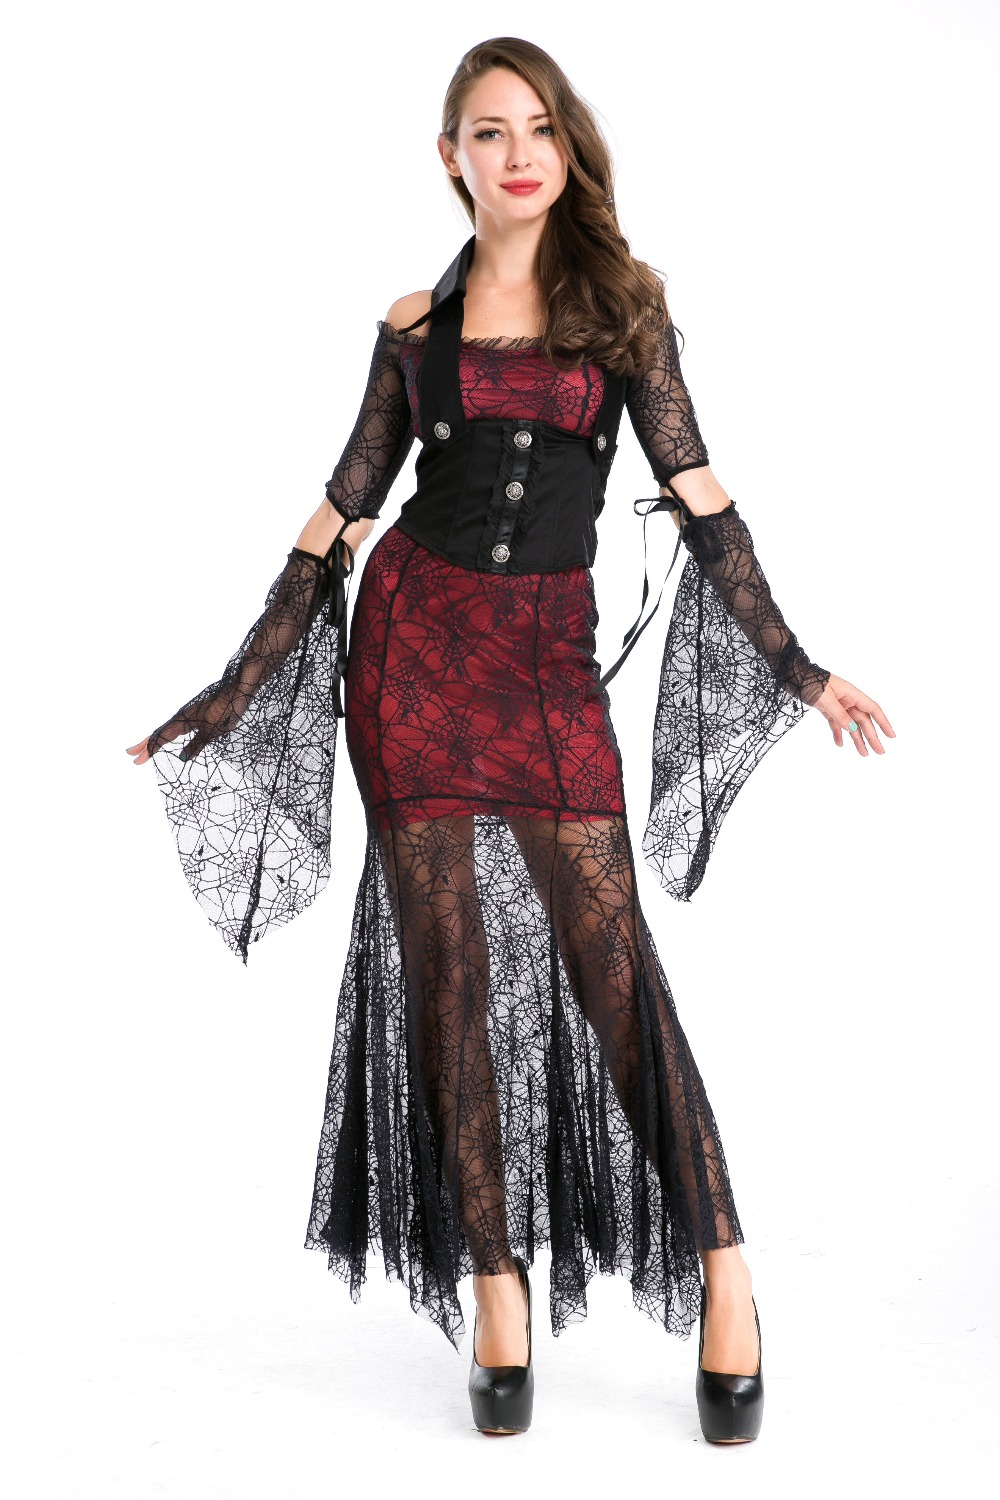 2017 hot Gothic style Women Halloween Costume black Spider lace tight long dress Vampire cosply costume